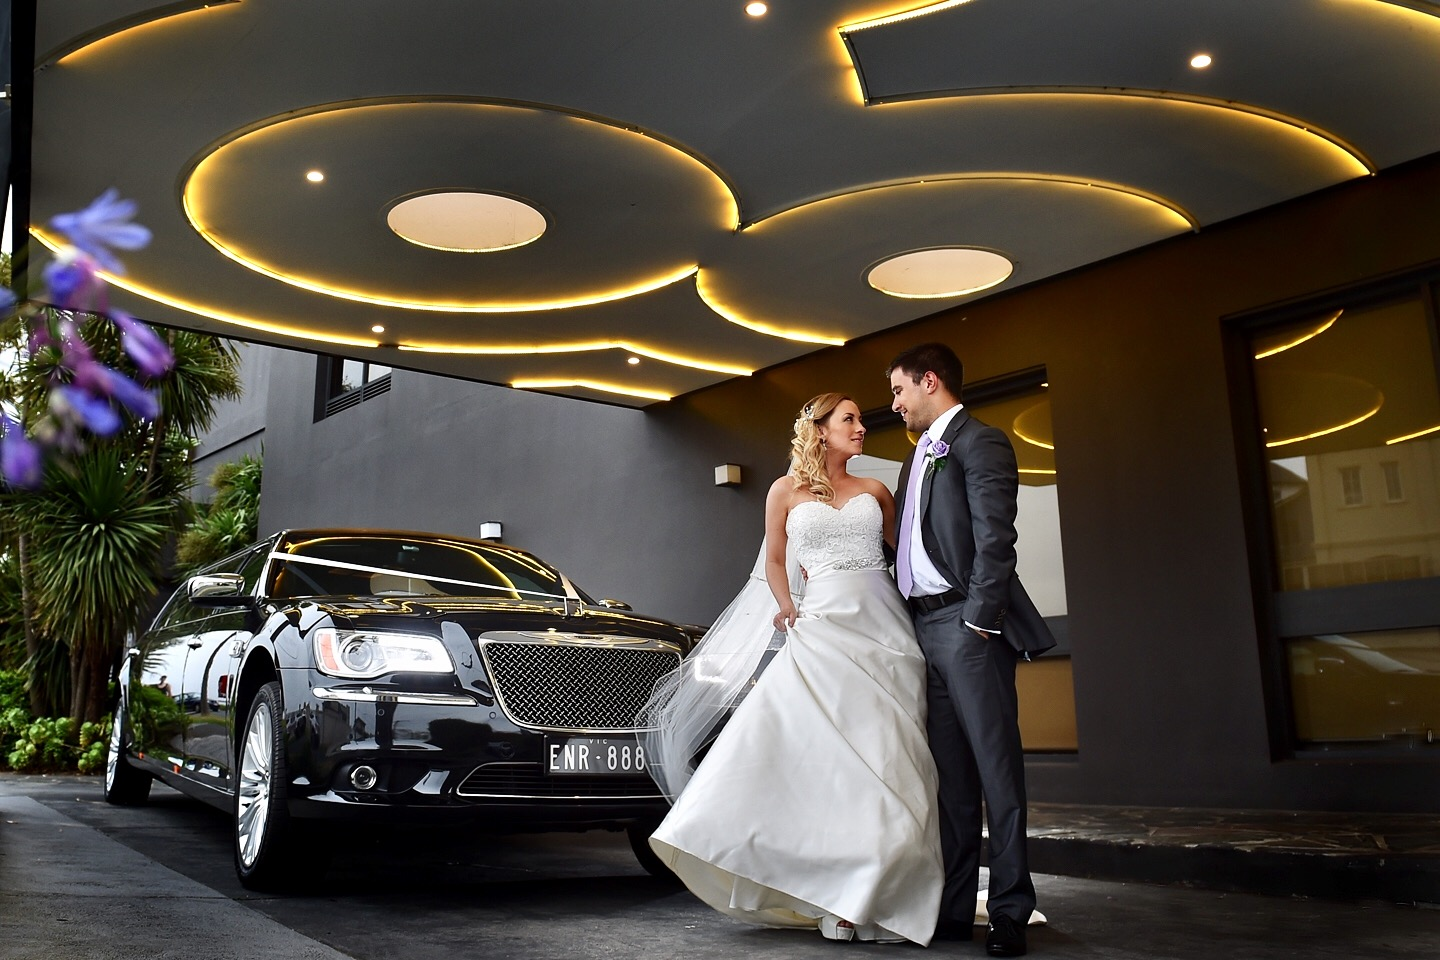 6 Seater Limo Hire Melbourne